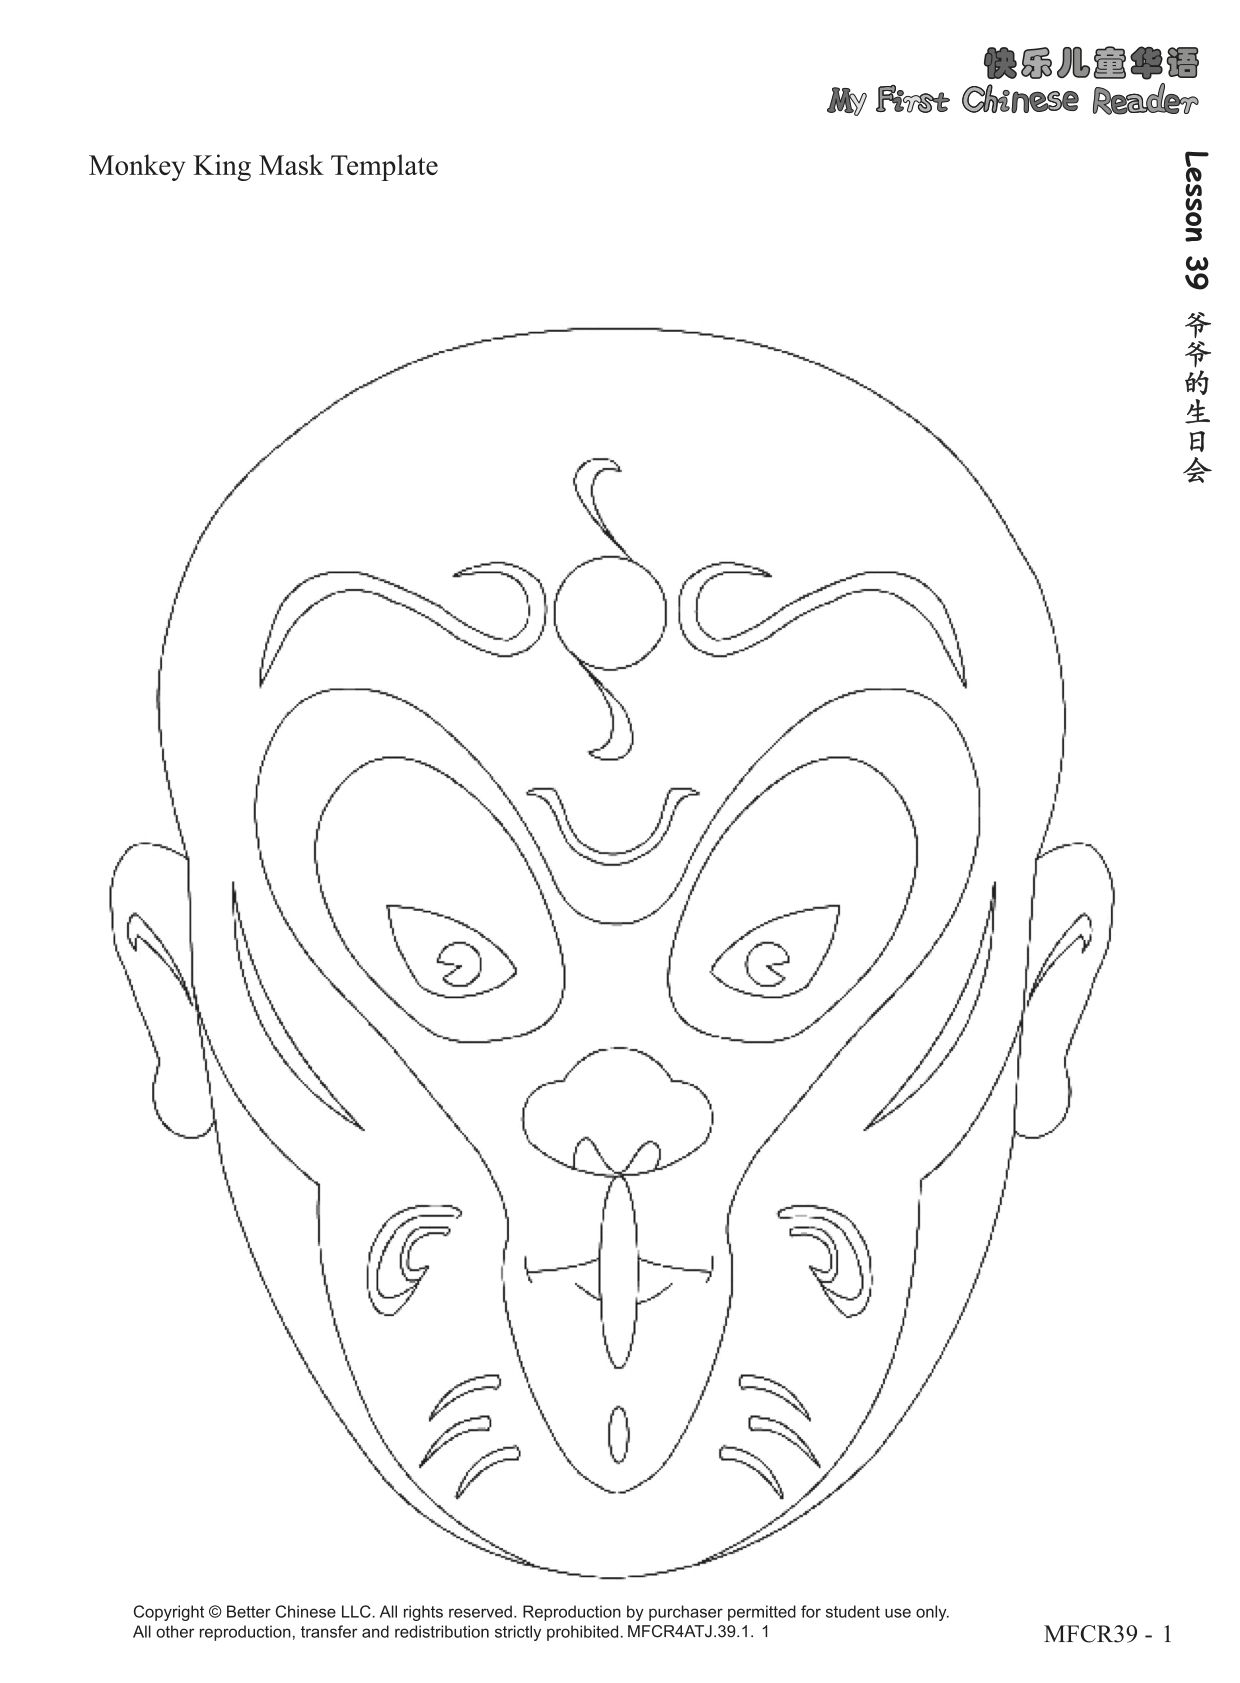 Monkey King Mask Template